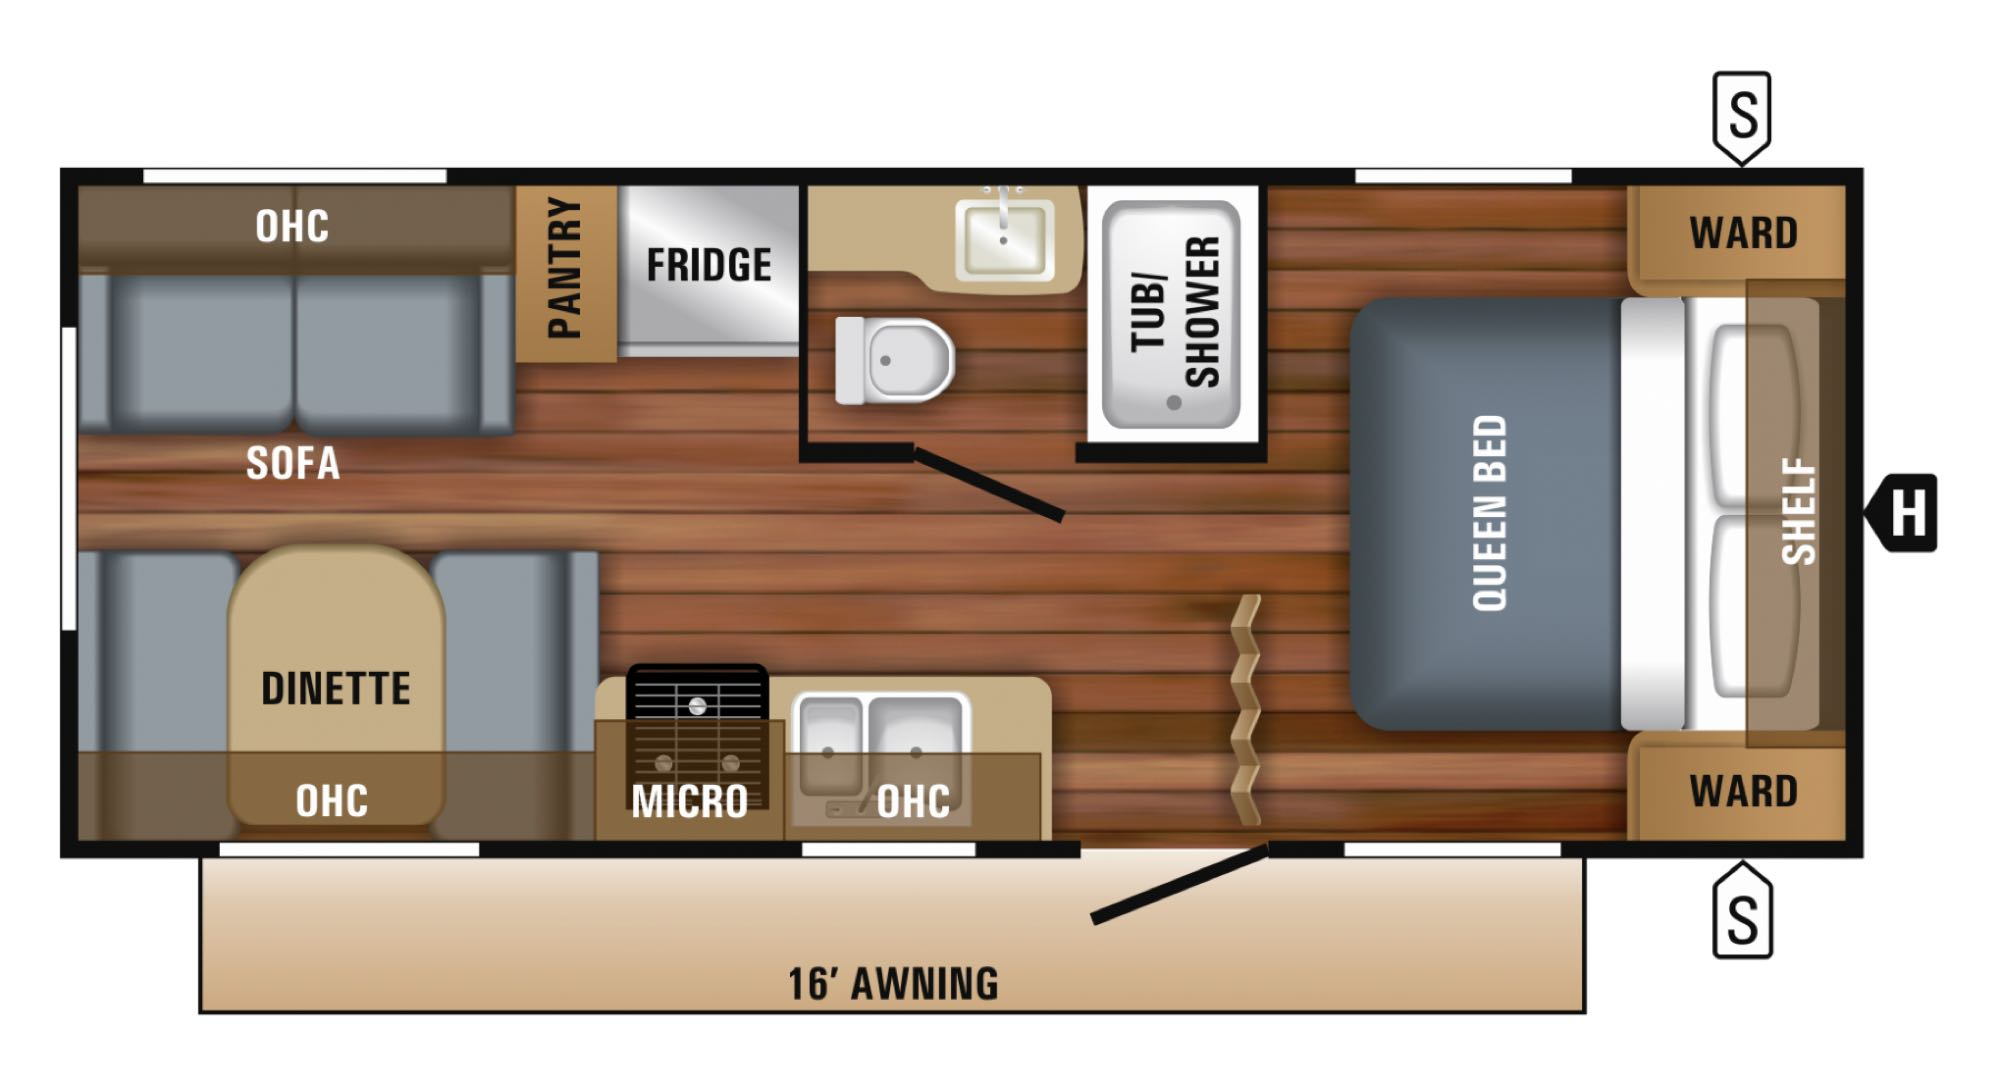 Awesome floorplan with couch, table, walk around bed, large fridge and freezer, oven and a large bathroom. Jayco Jay Flight 212 QB 2018